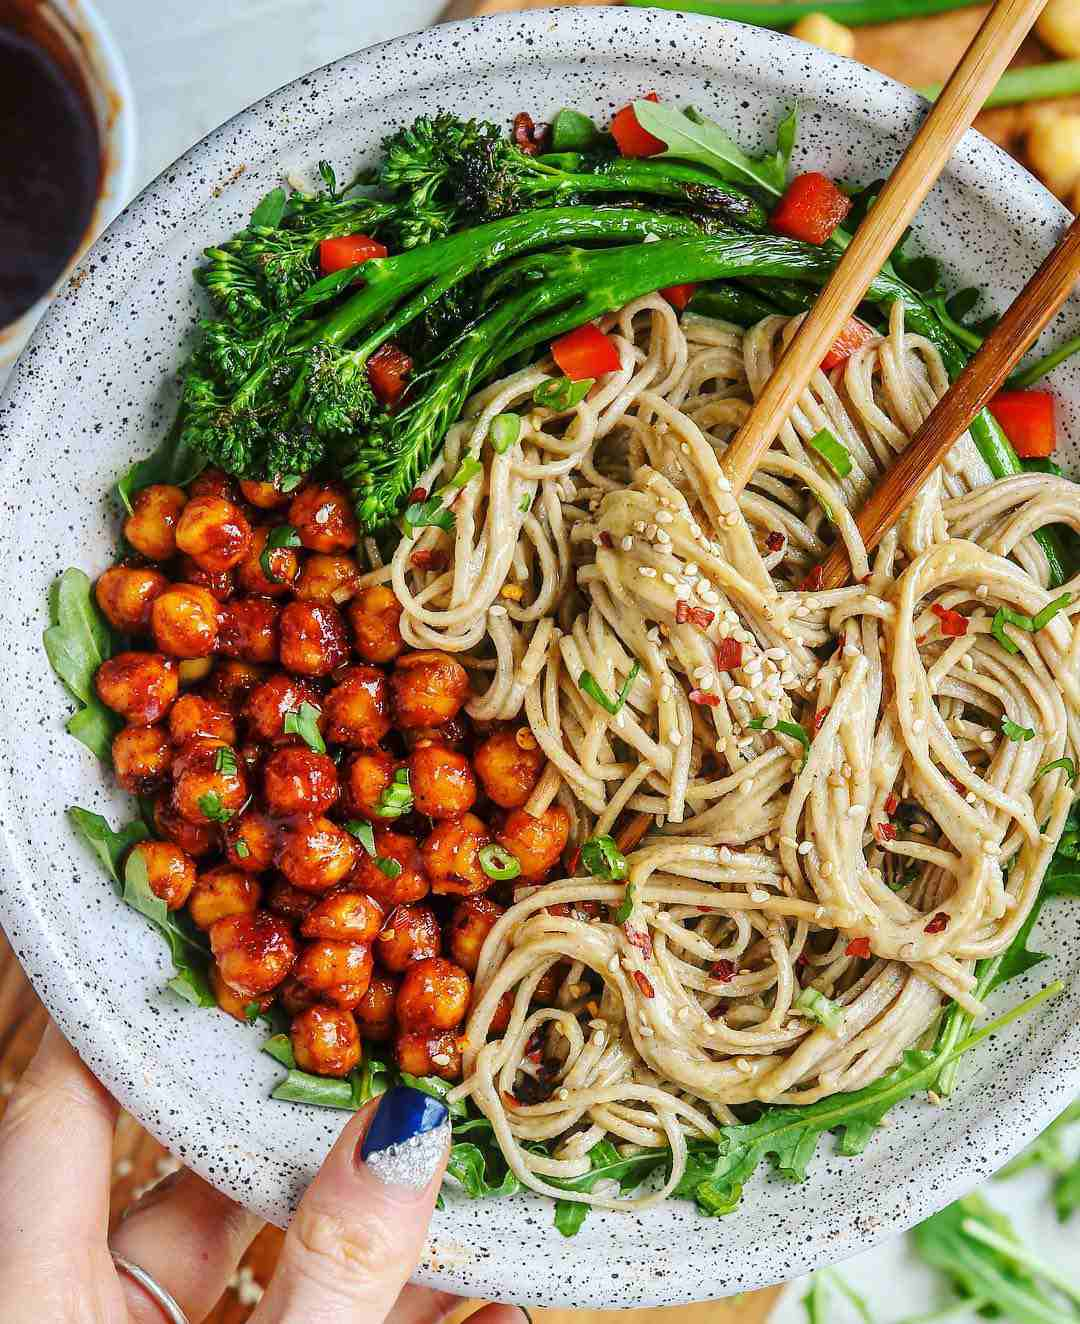 Chili chickpeas and garlic sesame noodles - @starinfinitefood